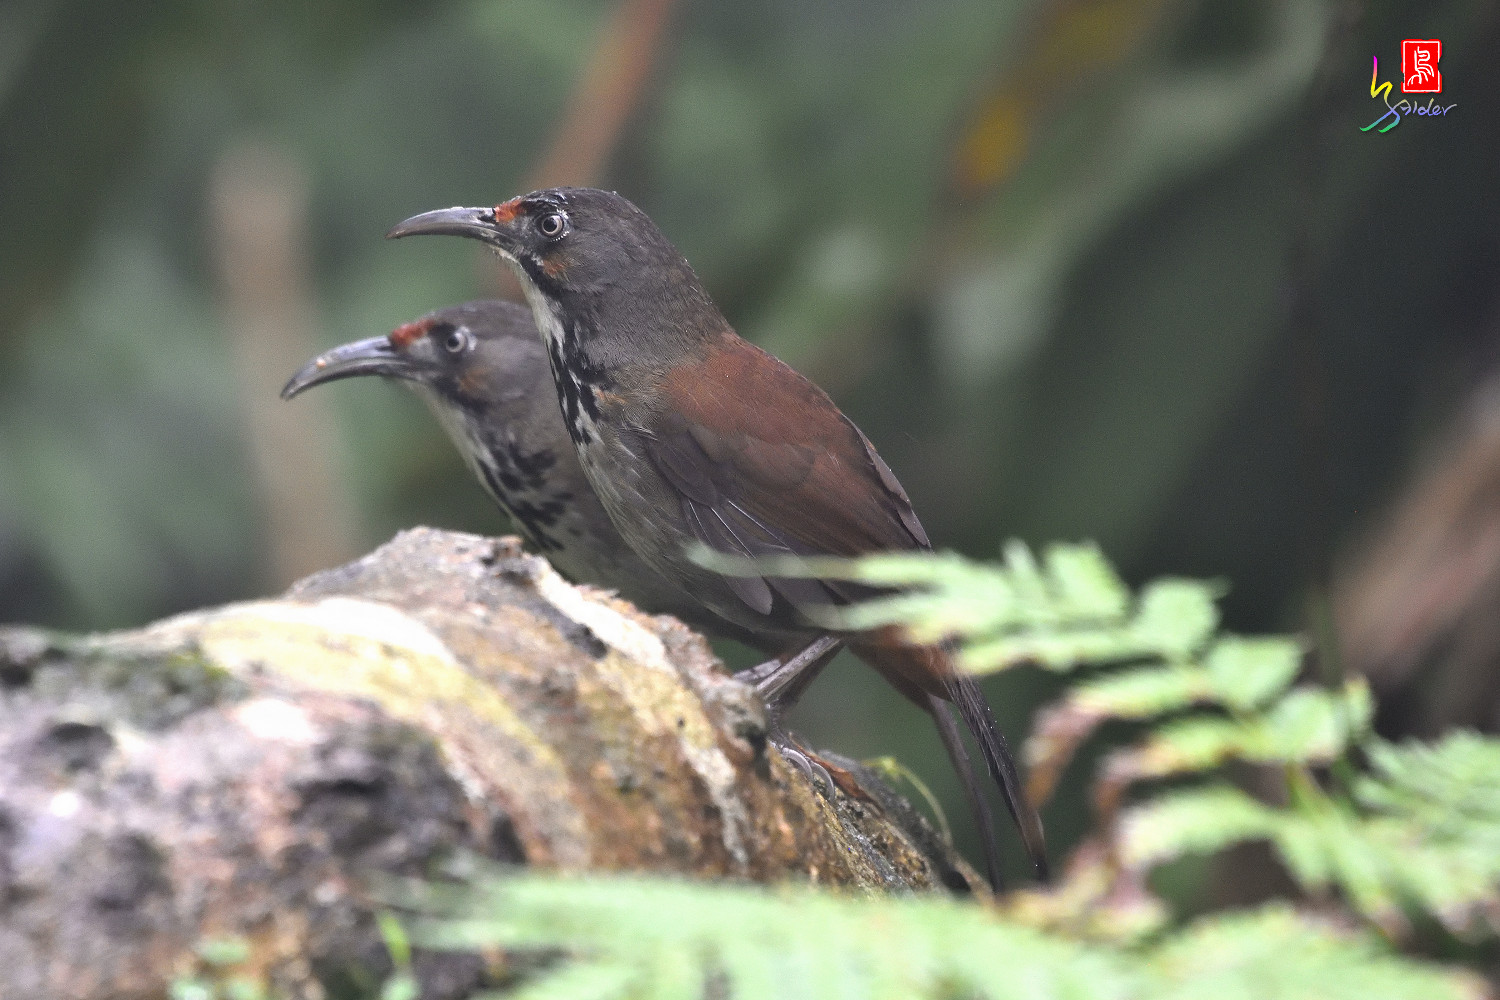 Rusty-cheeked_Scimitar-babbler_4417